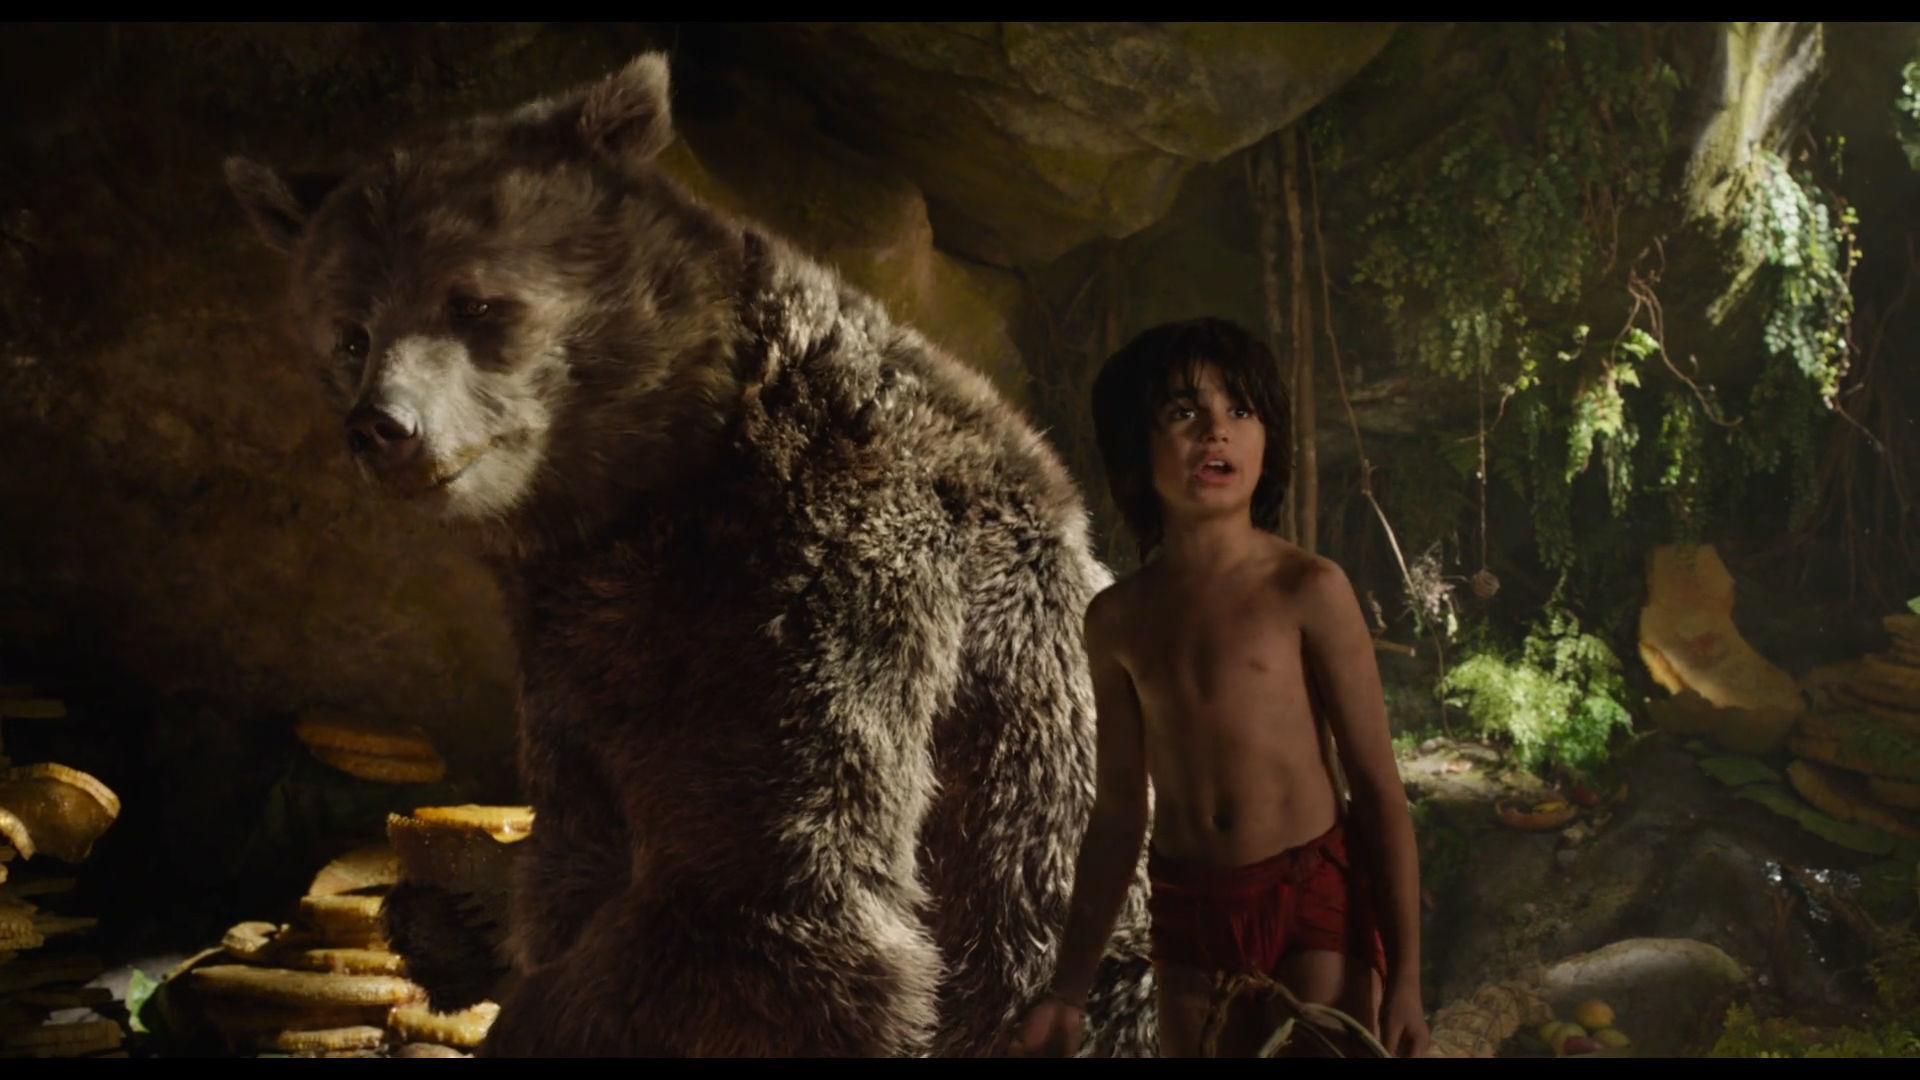 The Jungle Book Home Entertainment